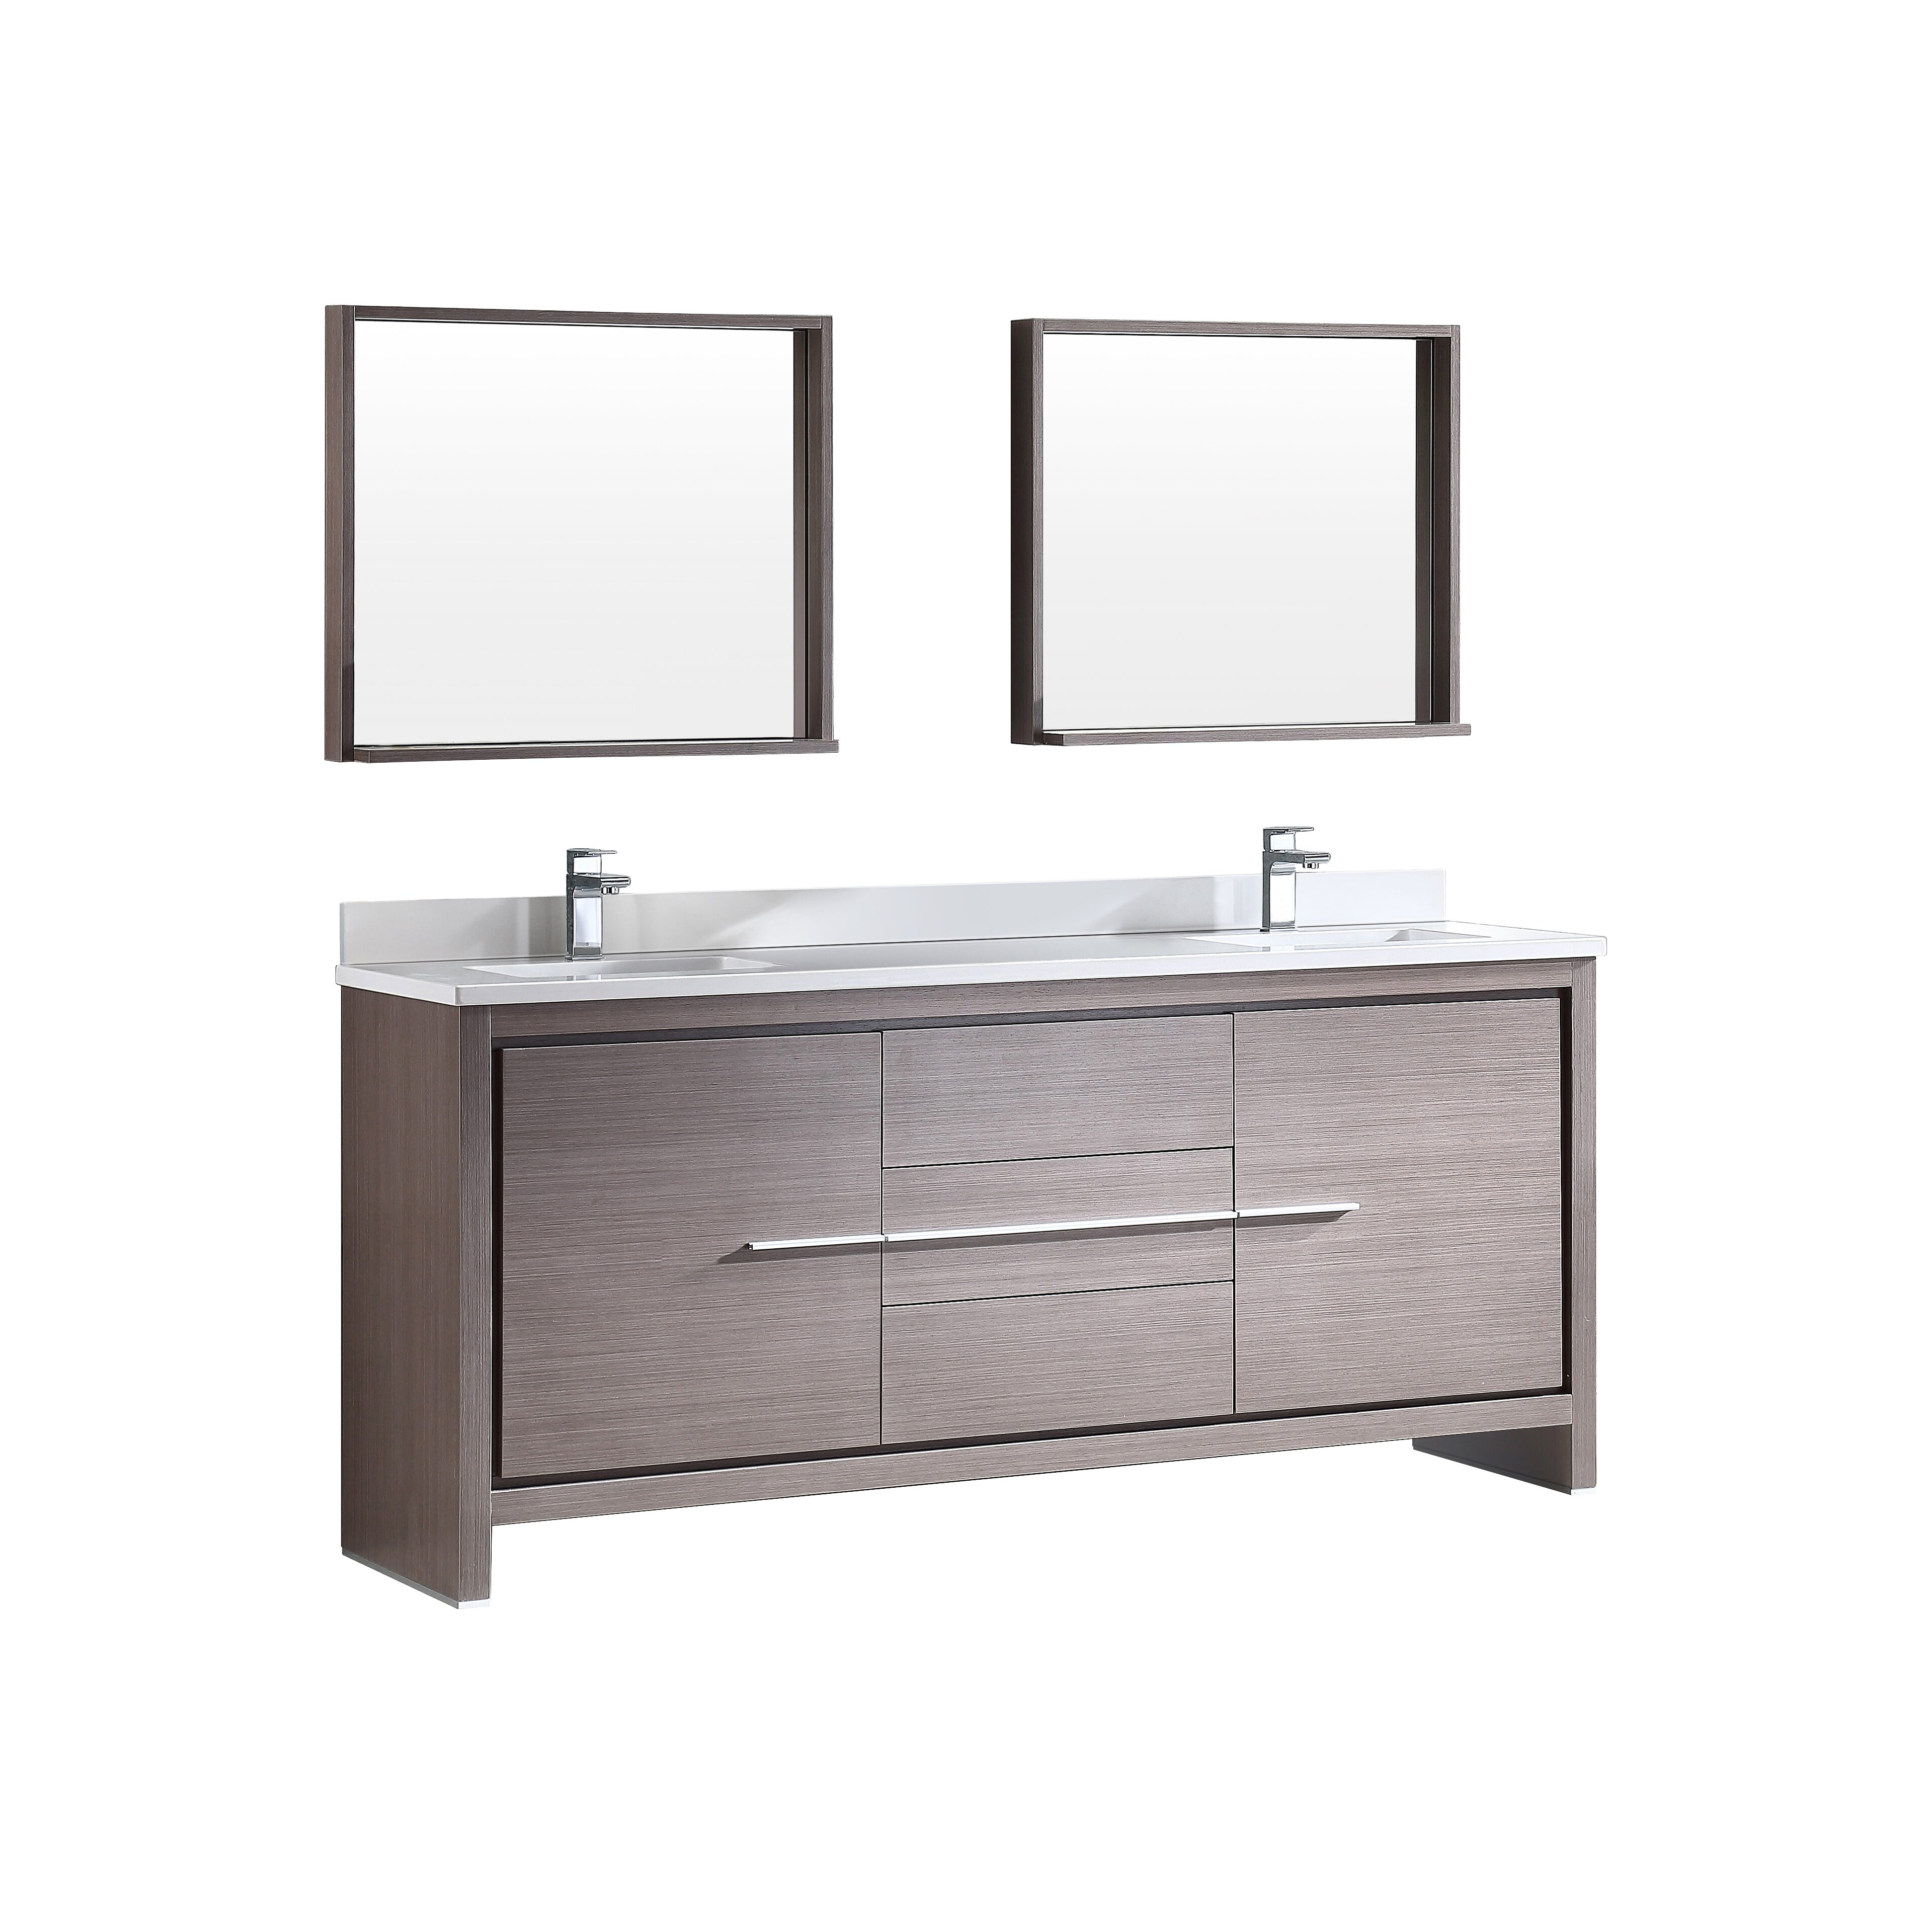 Fresca Trieste Allier 72 Double Modern Sink Bathroom Vanity Set With Mirror Reviews Wayfair